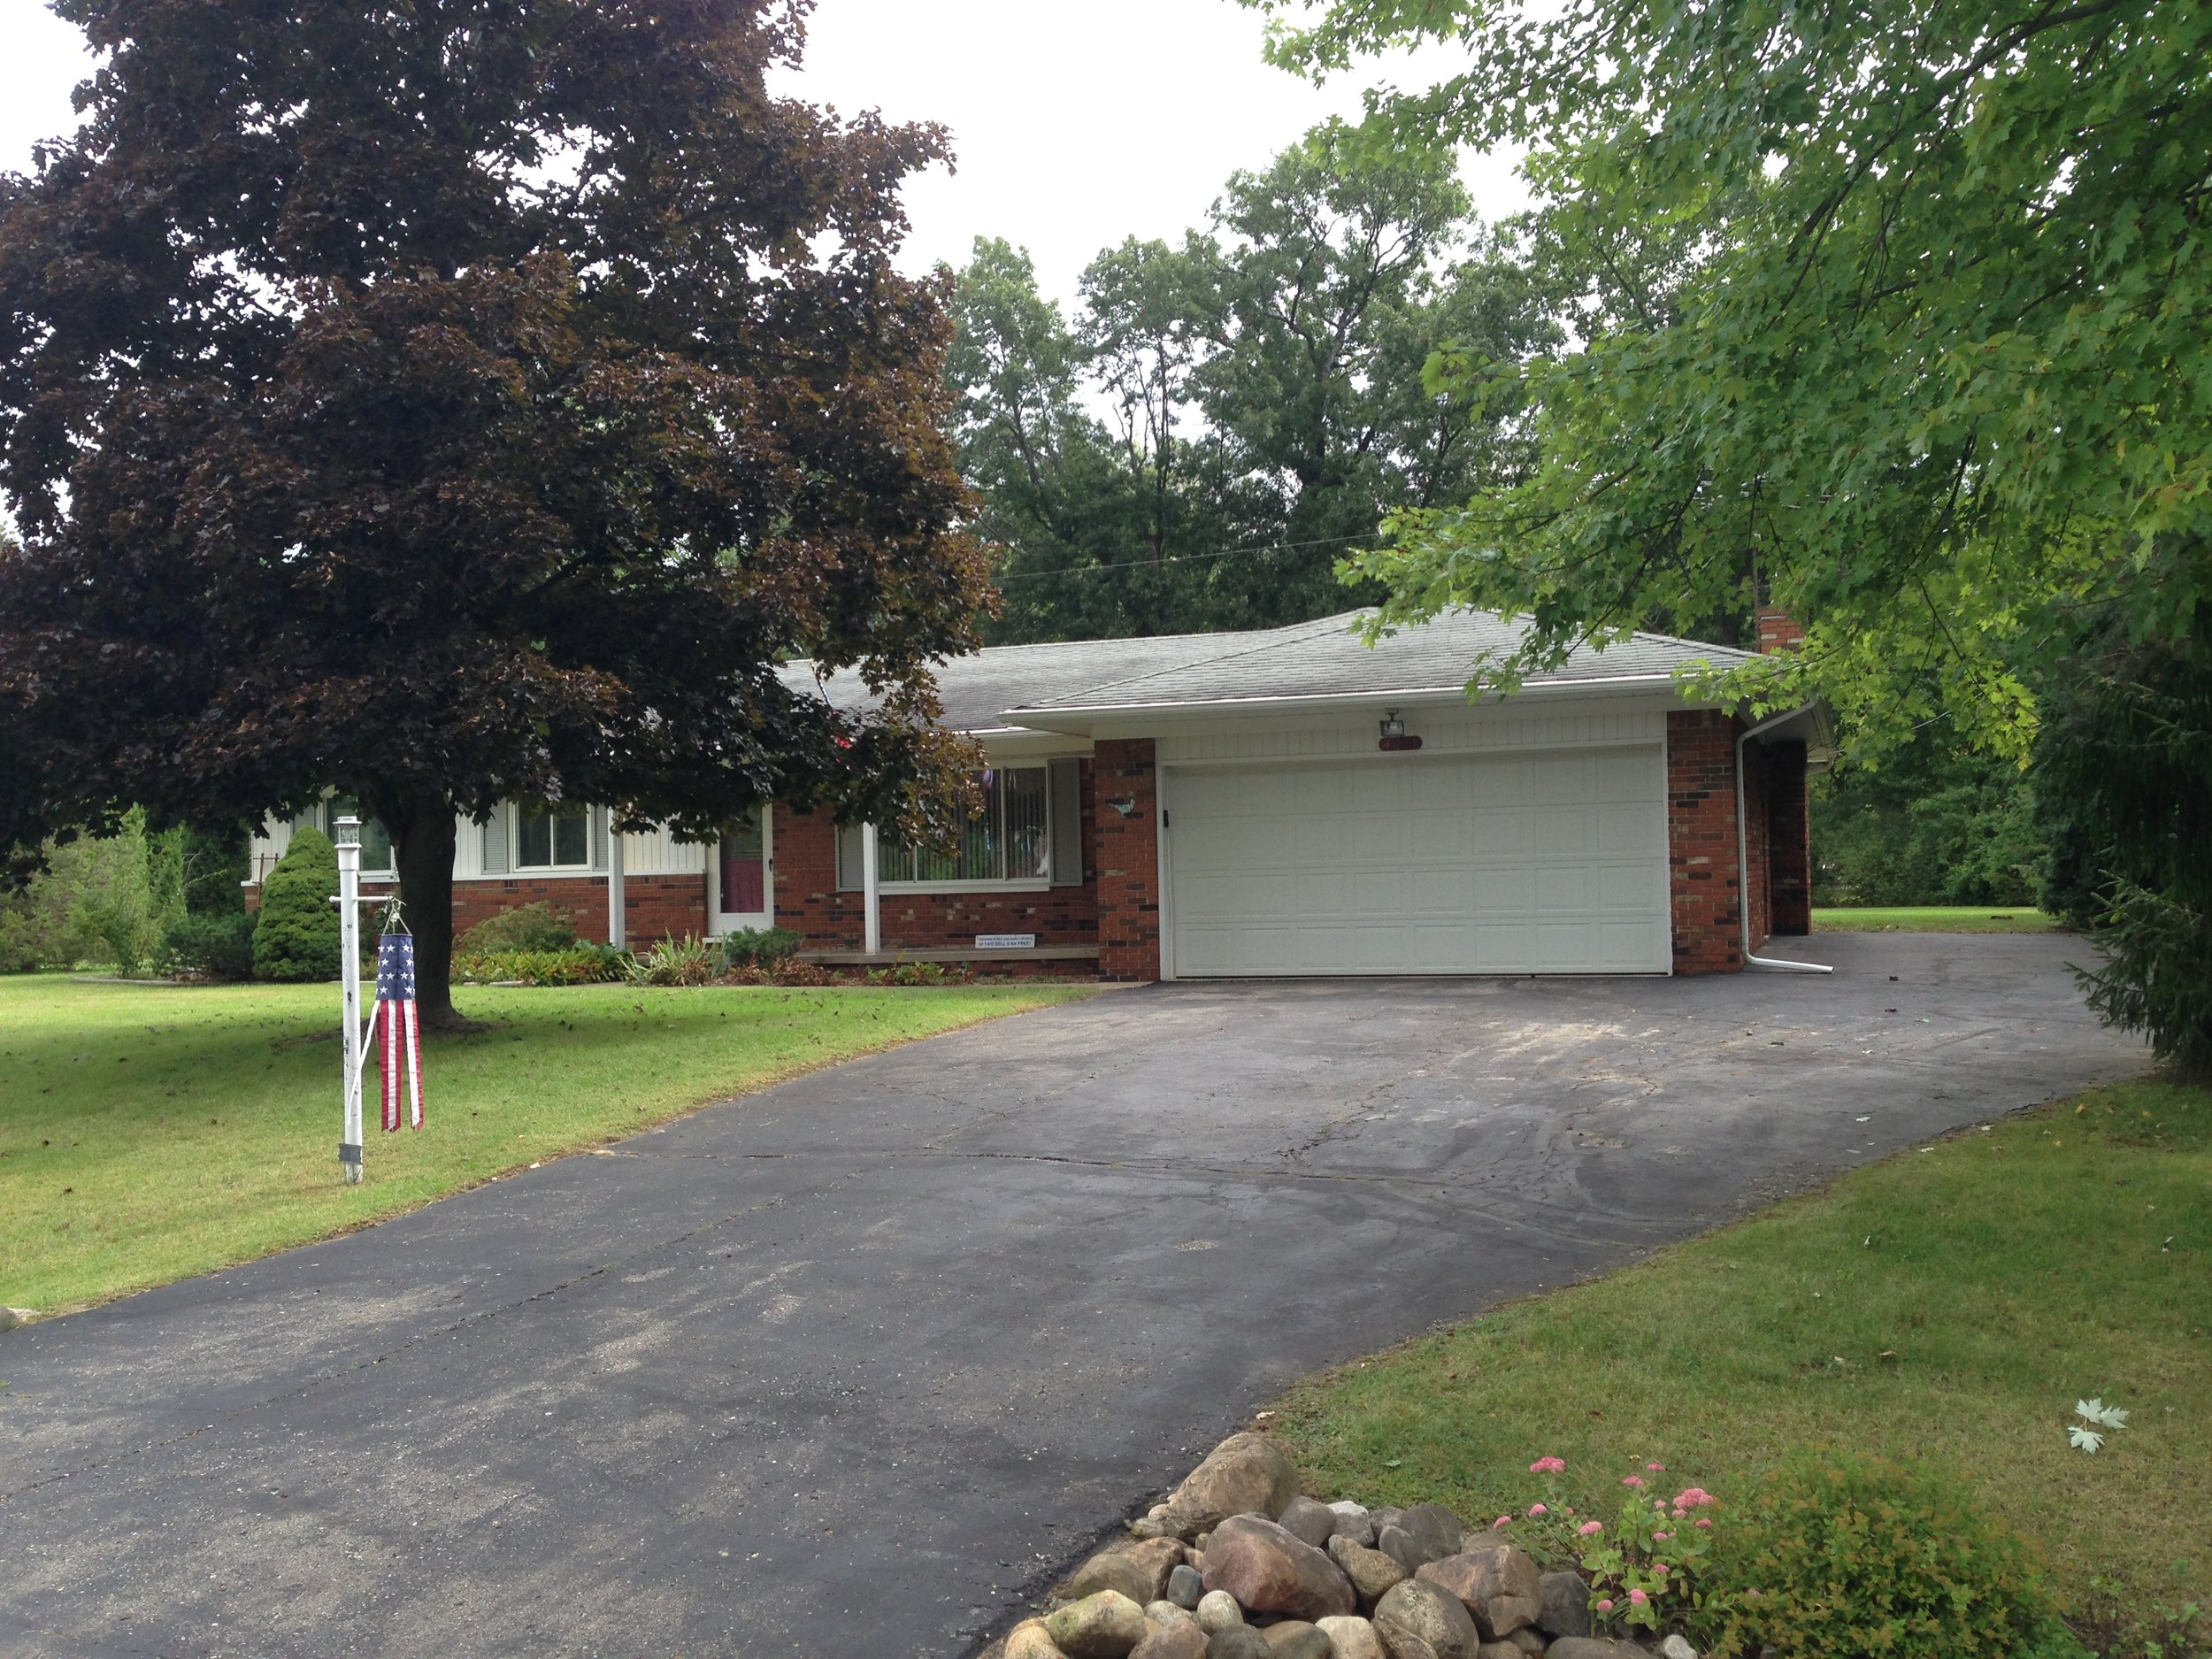 Village Square- Brighton - $175,500   DOM 18 / Sold for 98% of asking price / 9 Showings